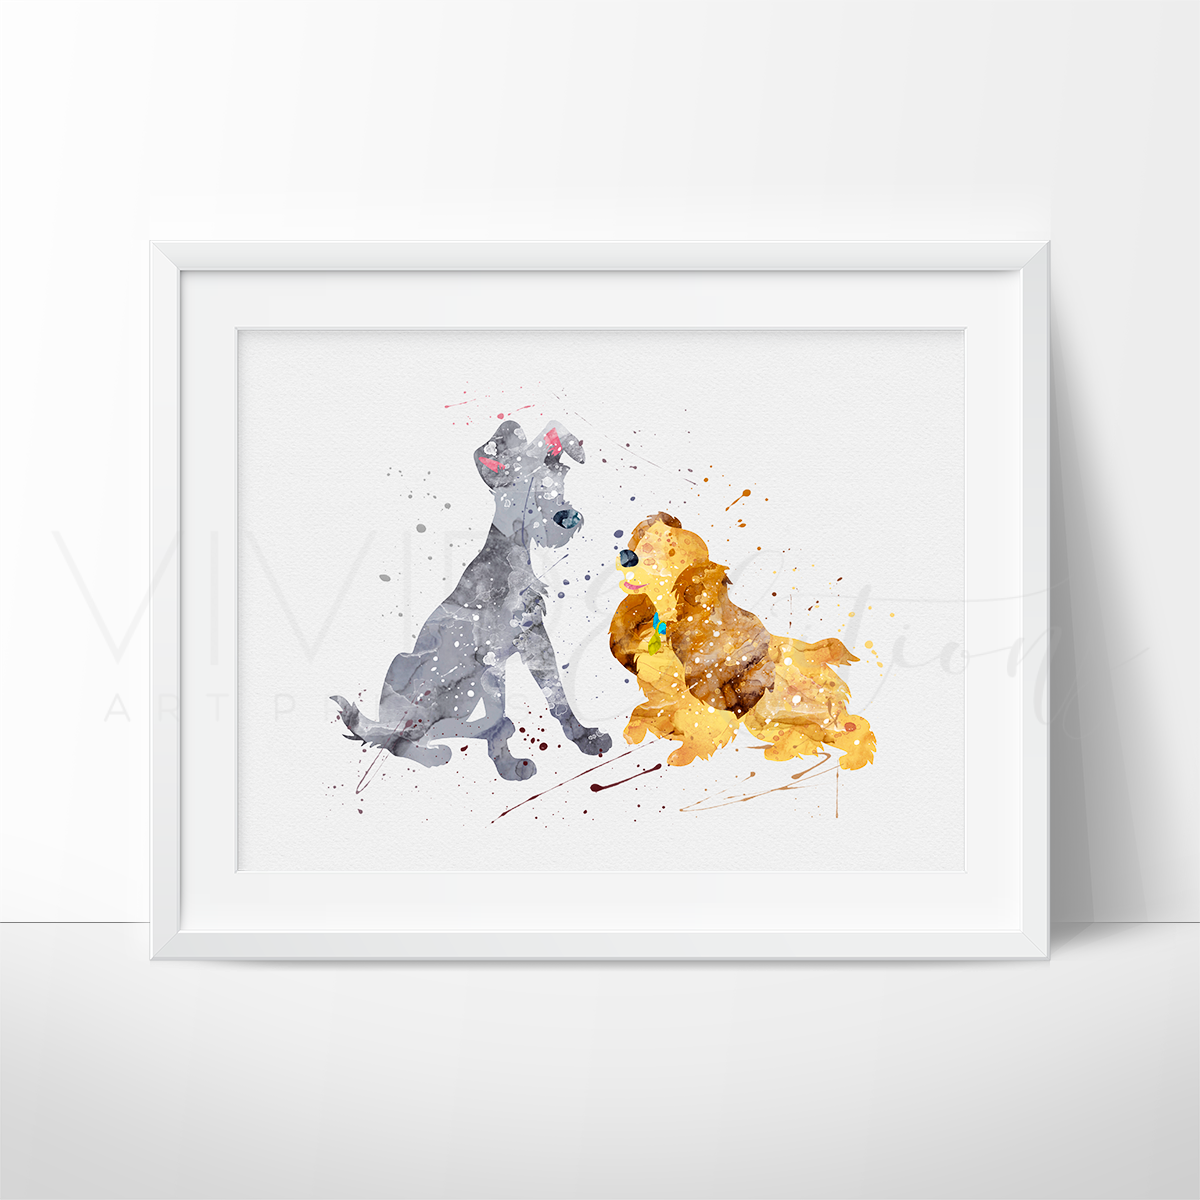 Lady and the Tramp Watercolor Art Print Art Print - VIVIDEDITIONS